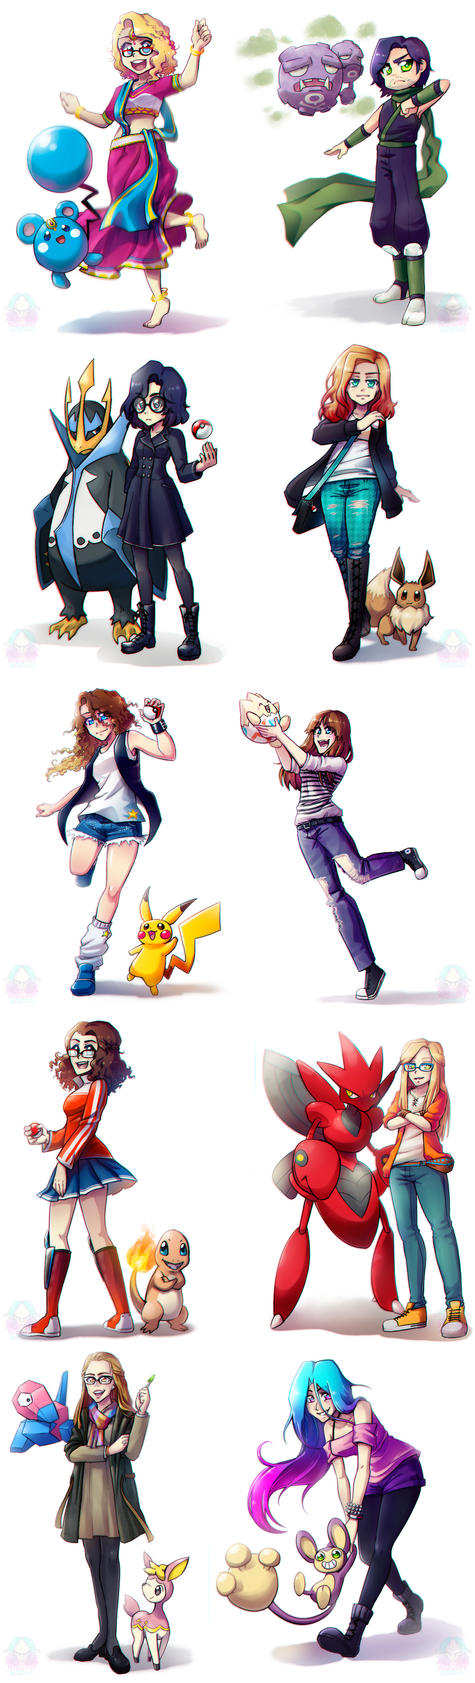 Pokemon Trainers by NarumyNatsue